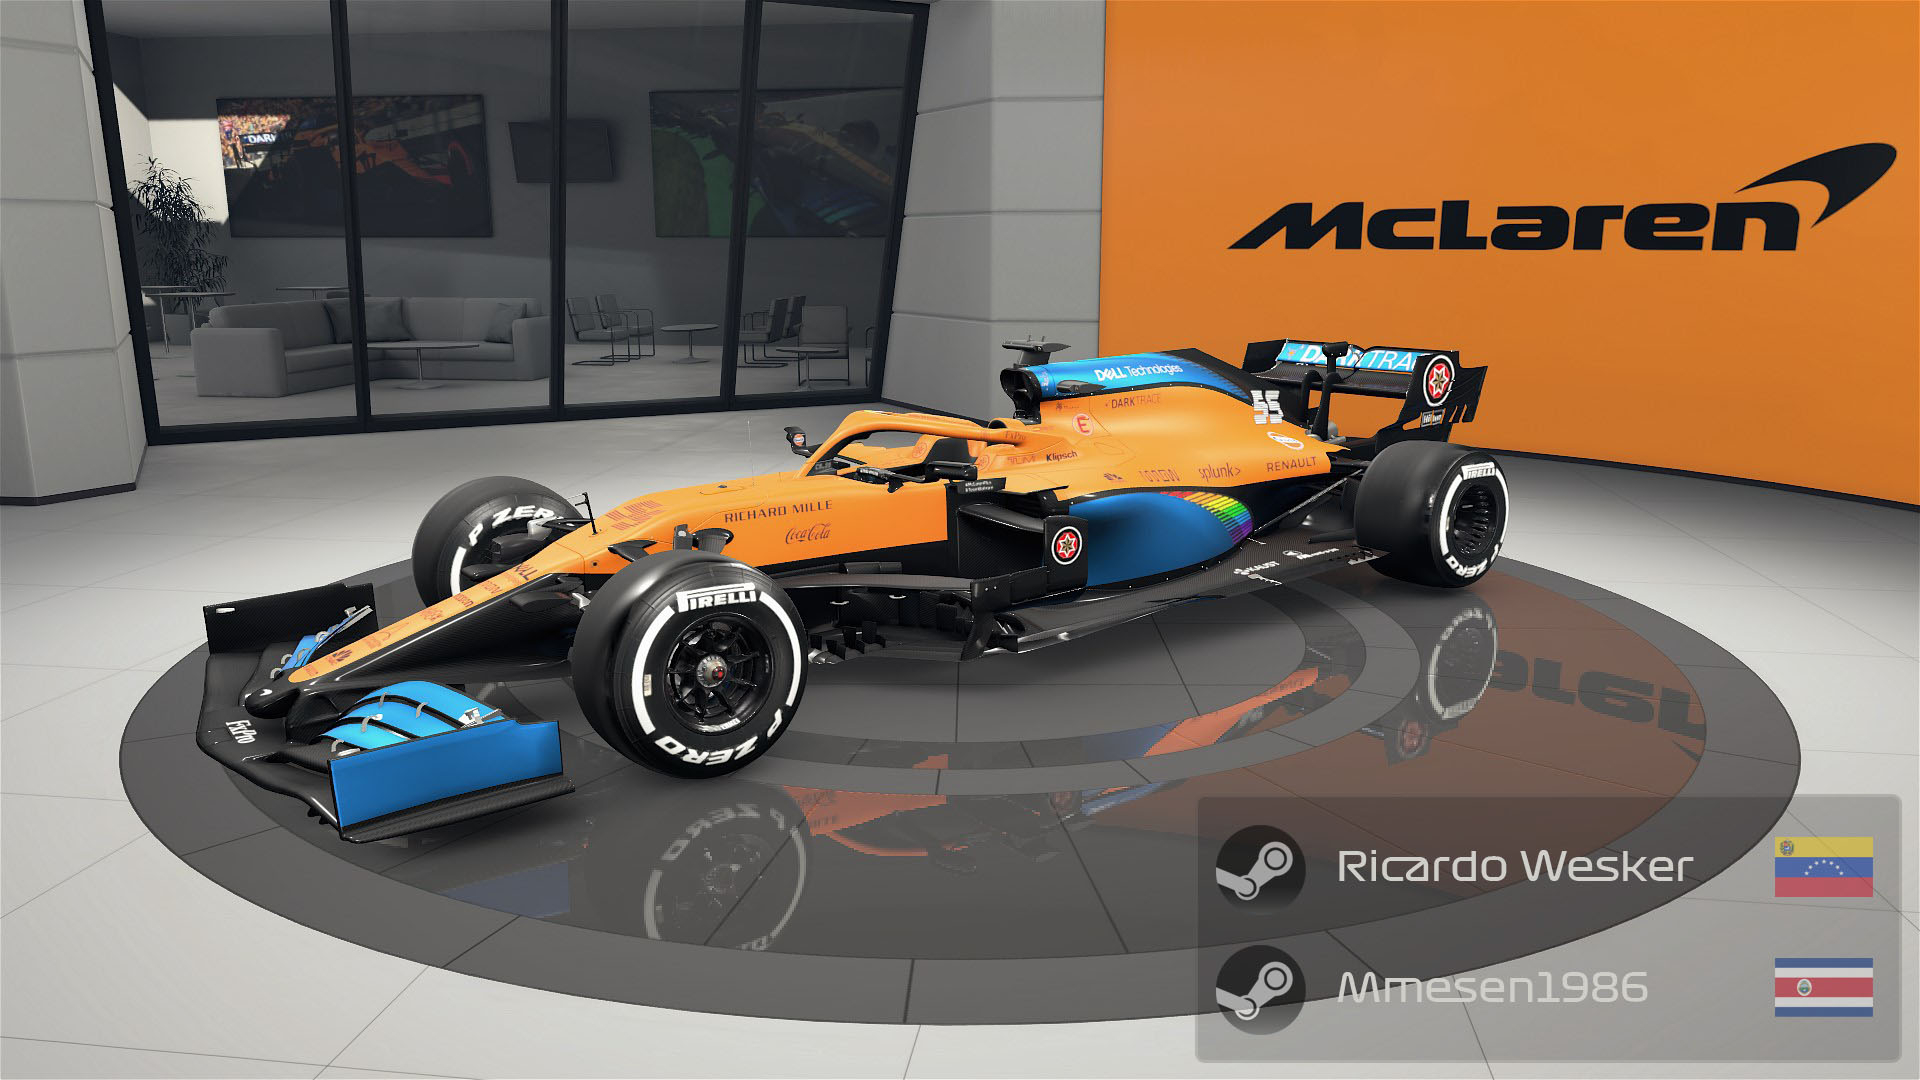 4. mcl